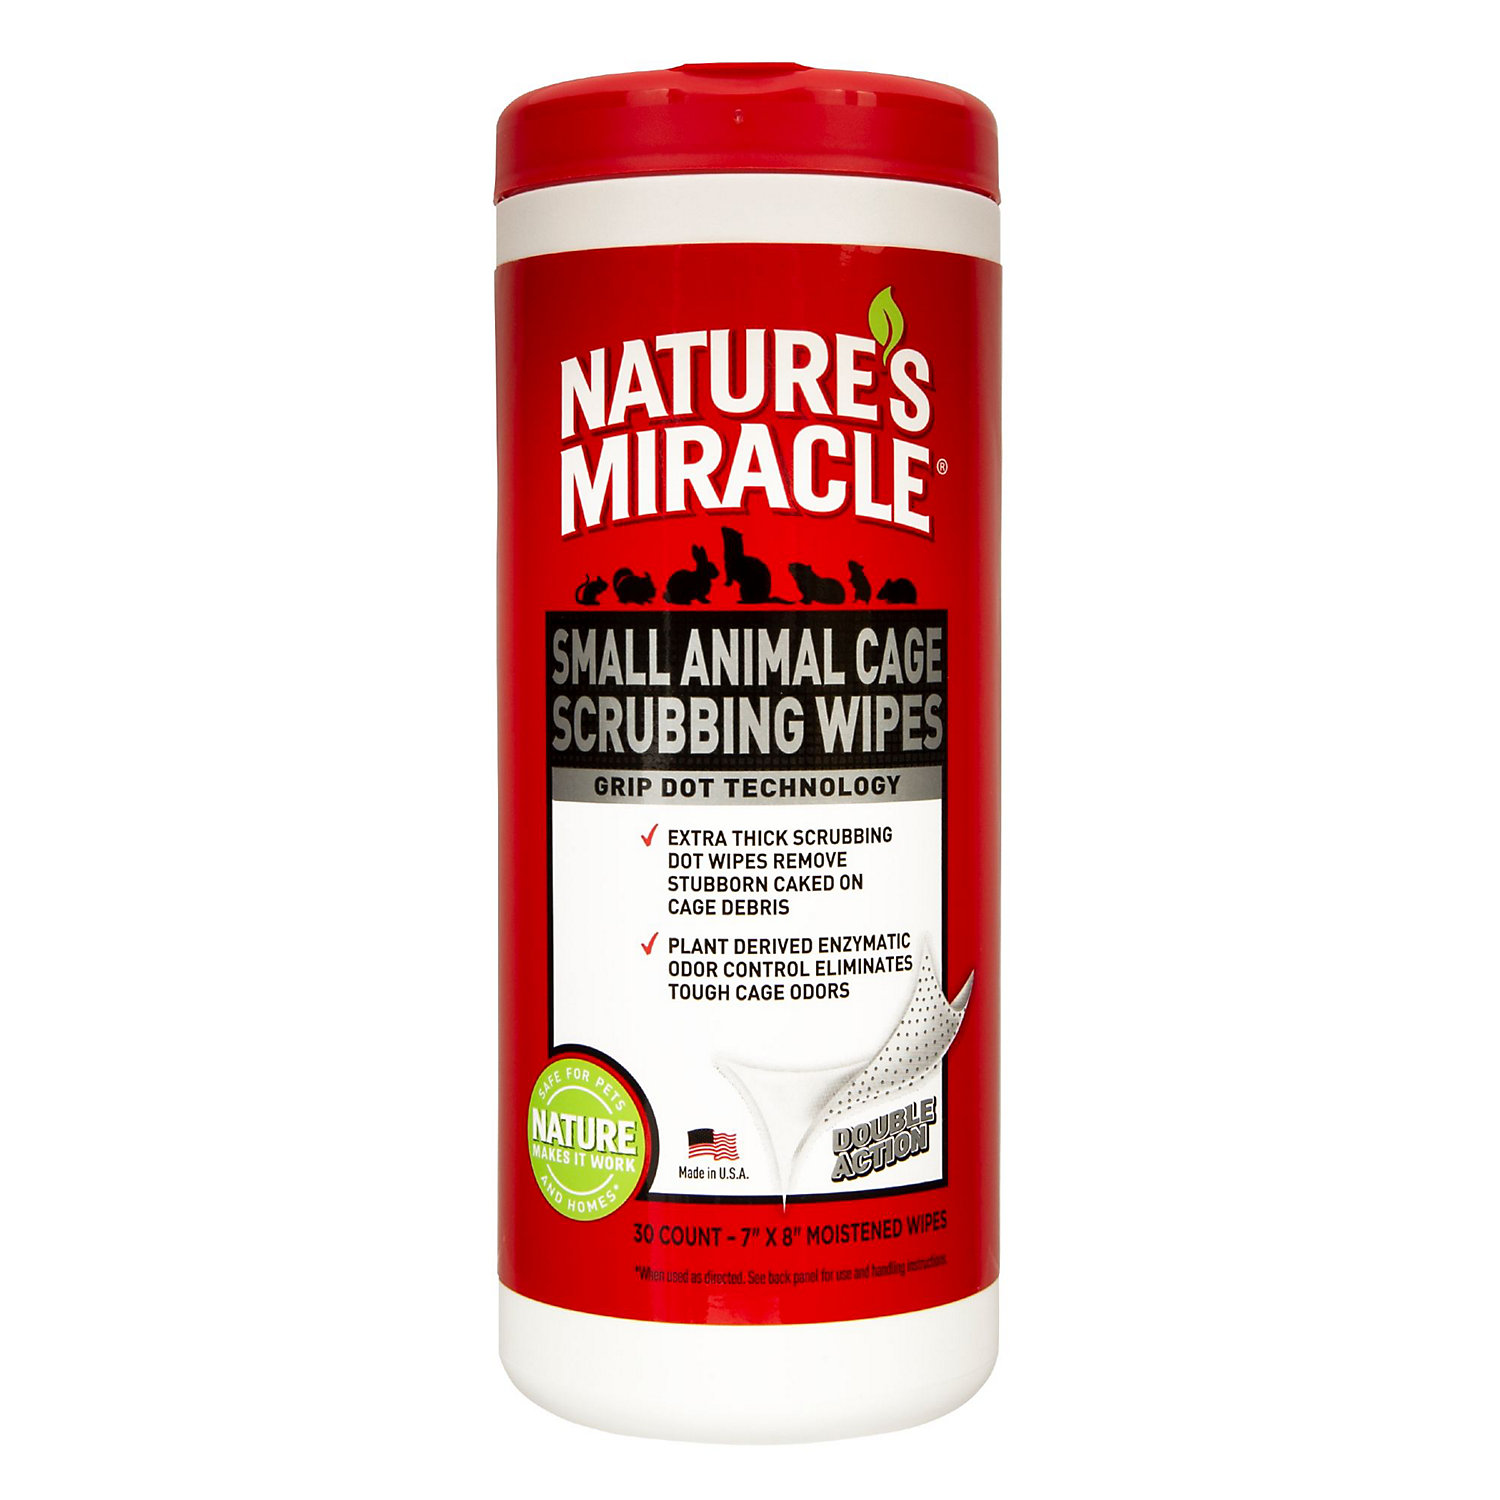 Nature's Miracle Small Animal Cage Scrubbing Wipes, 30 Count